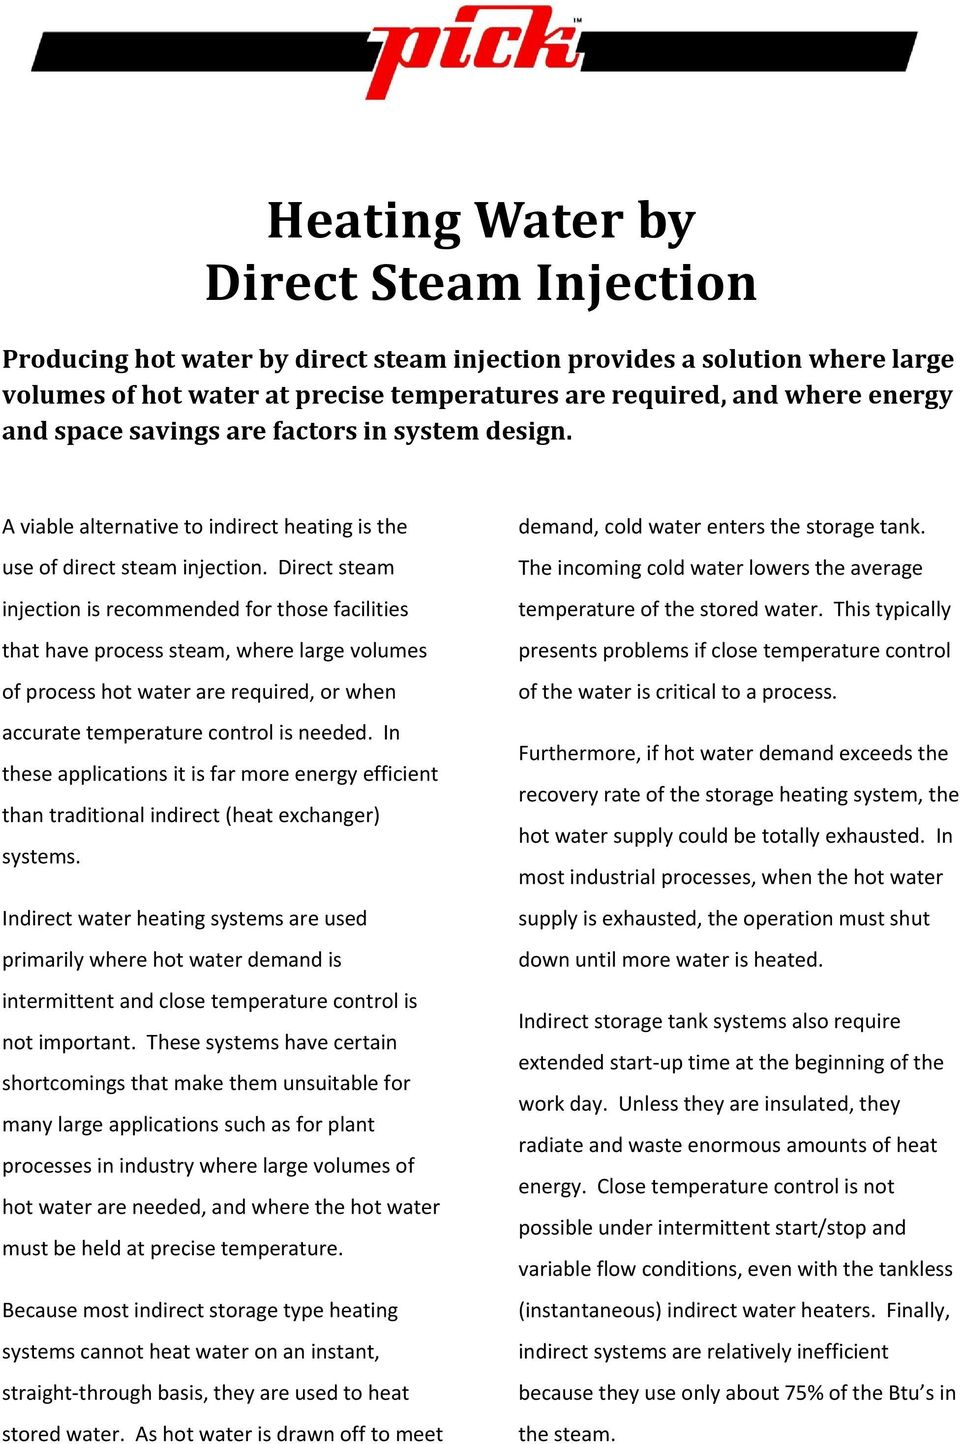 Direct steam injection is recommended for those facilities that have process steam, where large volumes of process hot water are required, or when accurate temperature control is needed.